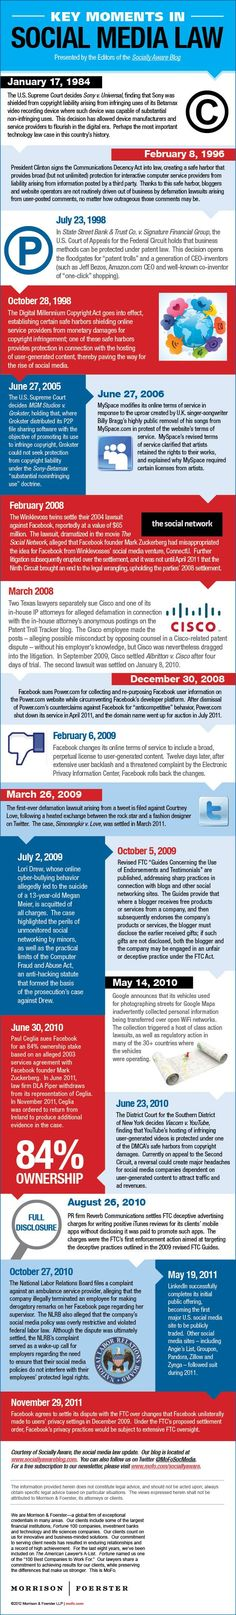 Key moments in social media law infographic